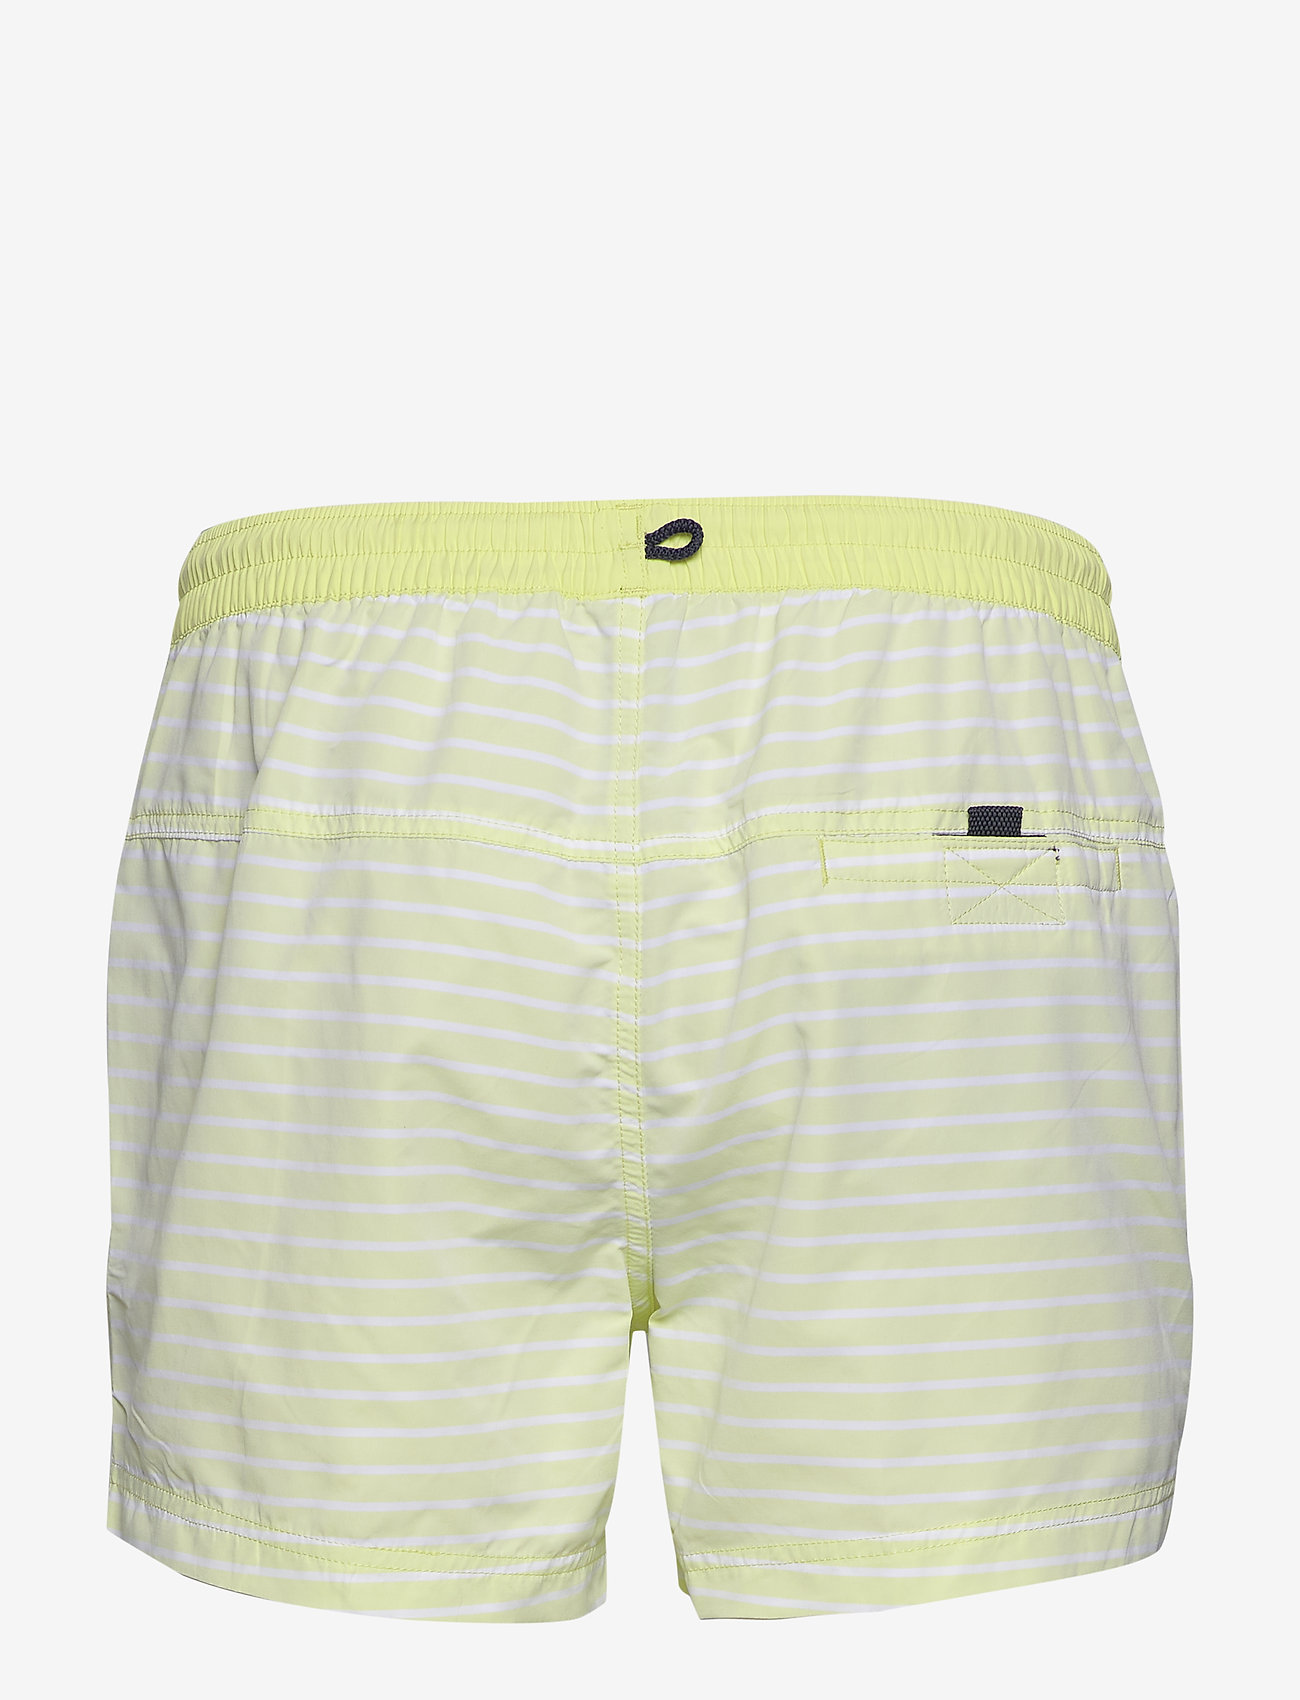 Helly Hansen - COLWELL TRUNK - badehosen - sunny lime - 1